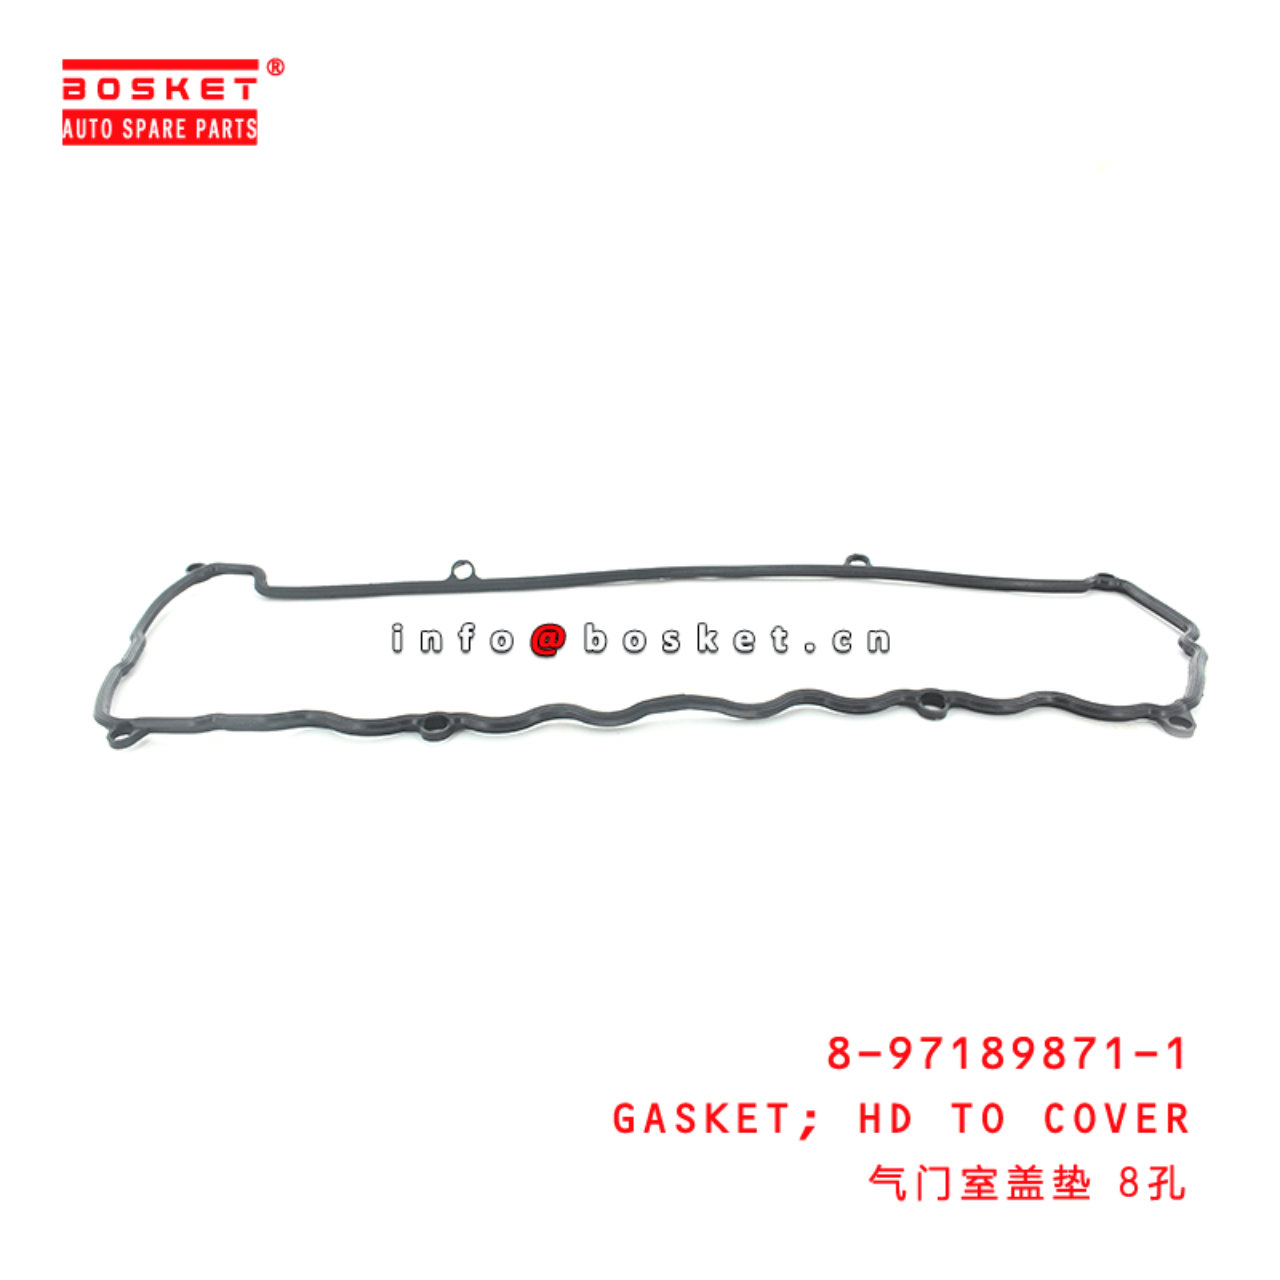 8-97189871-1 Head To Cover Gasket 8971898711 Suitable for ISUZU NKR NPR 4HF1